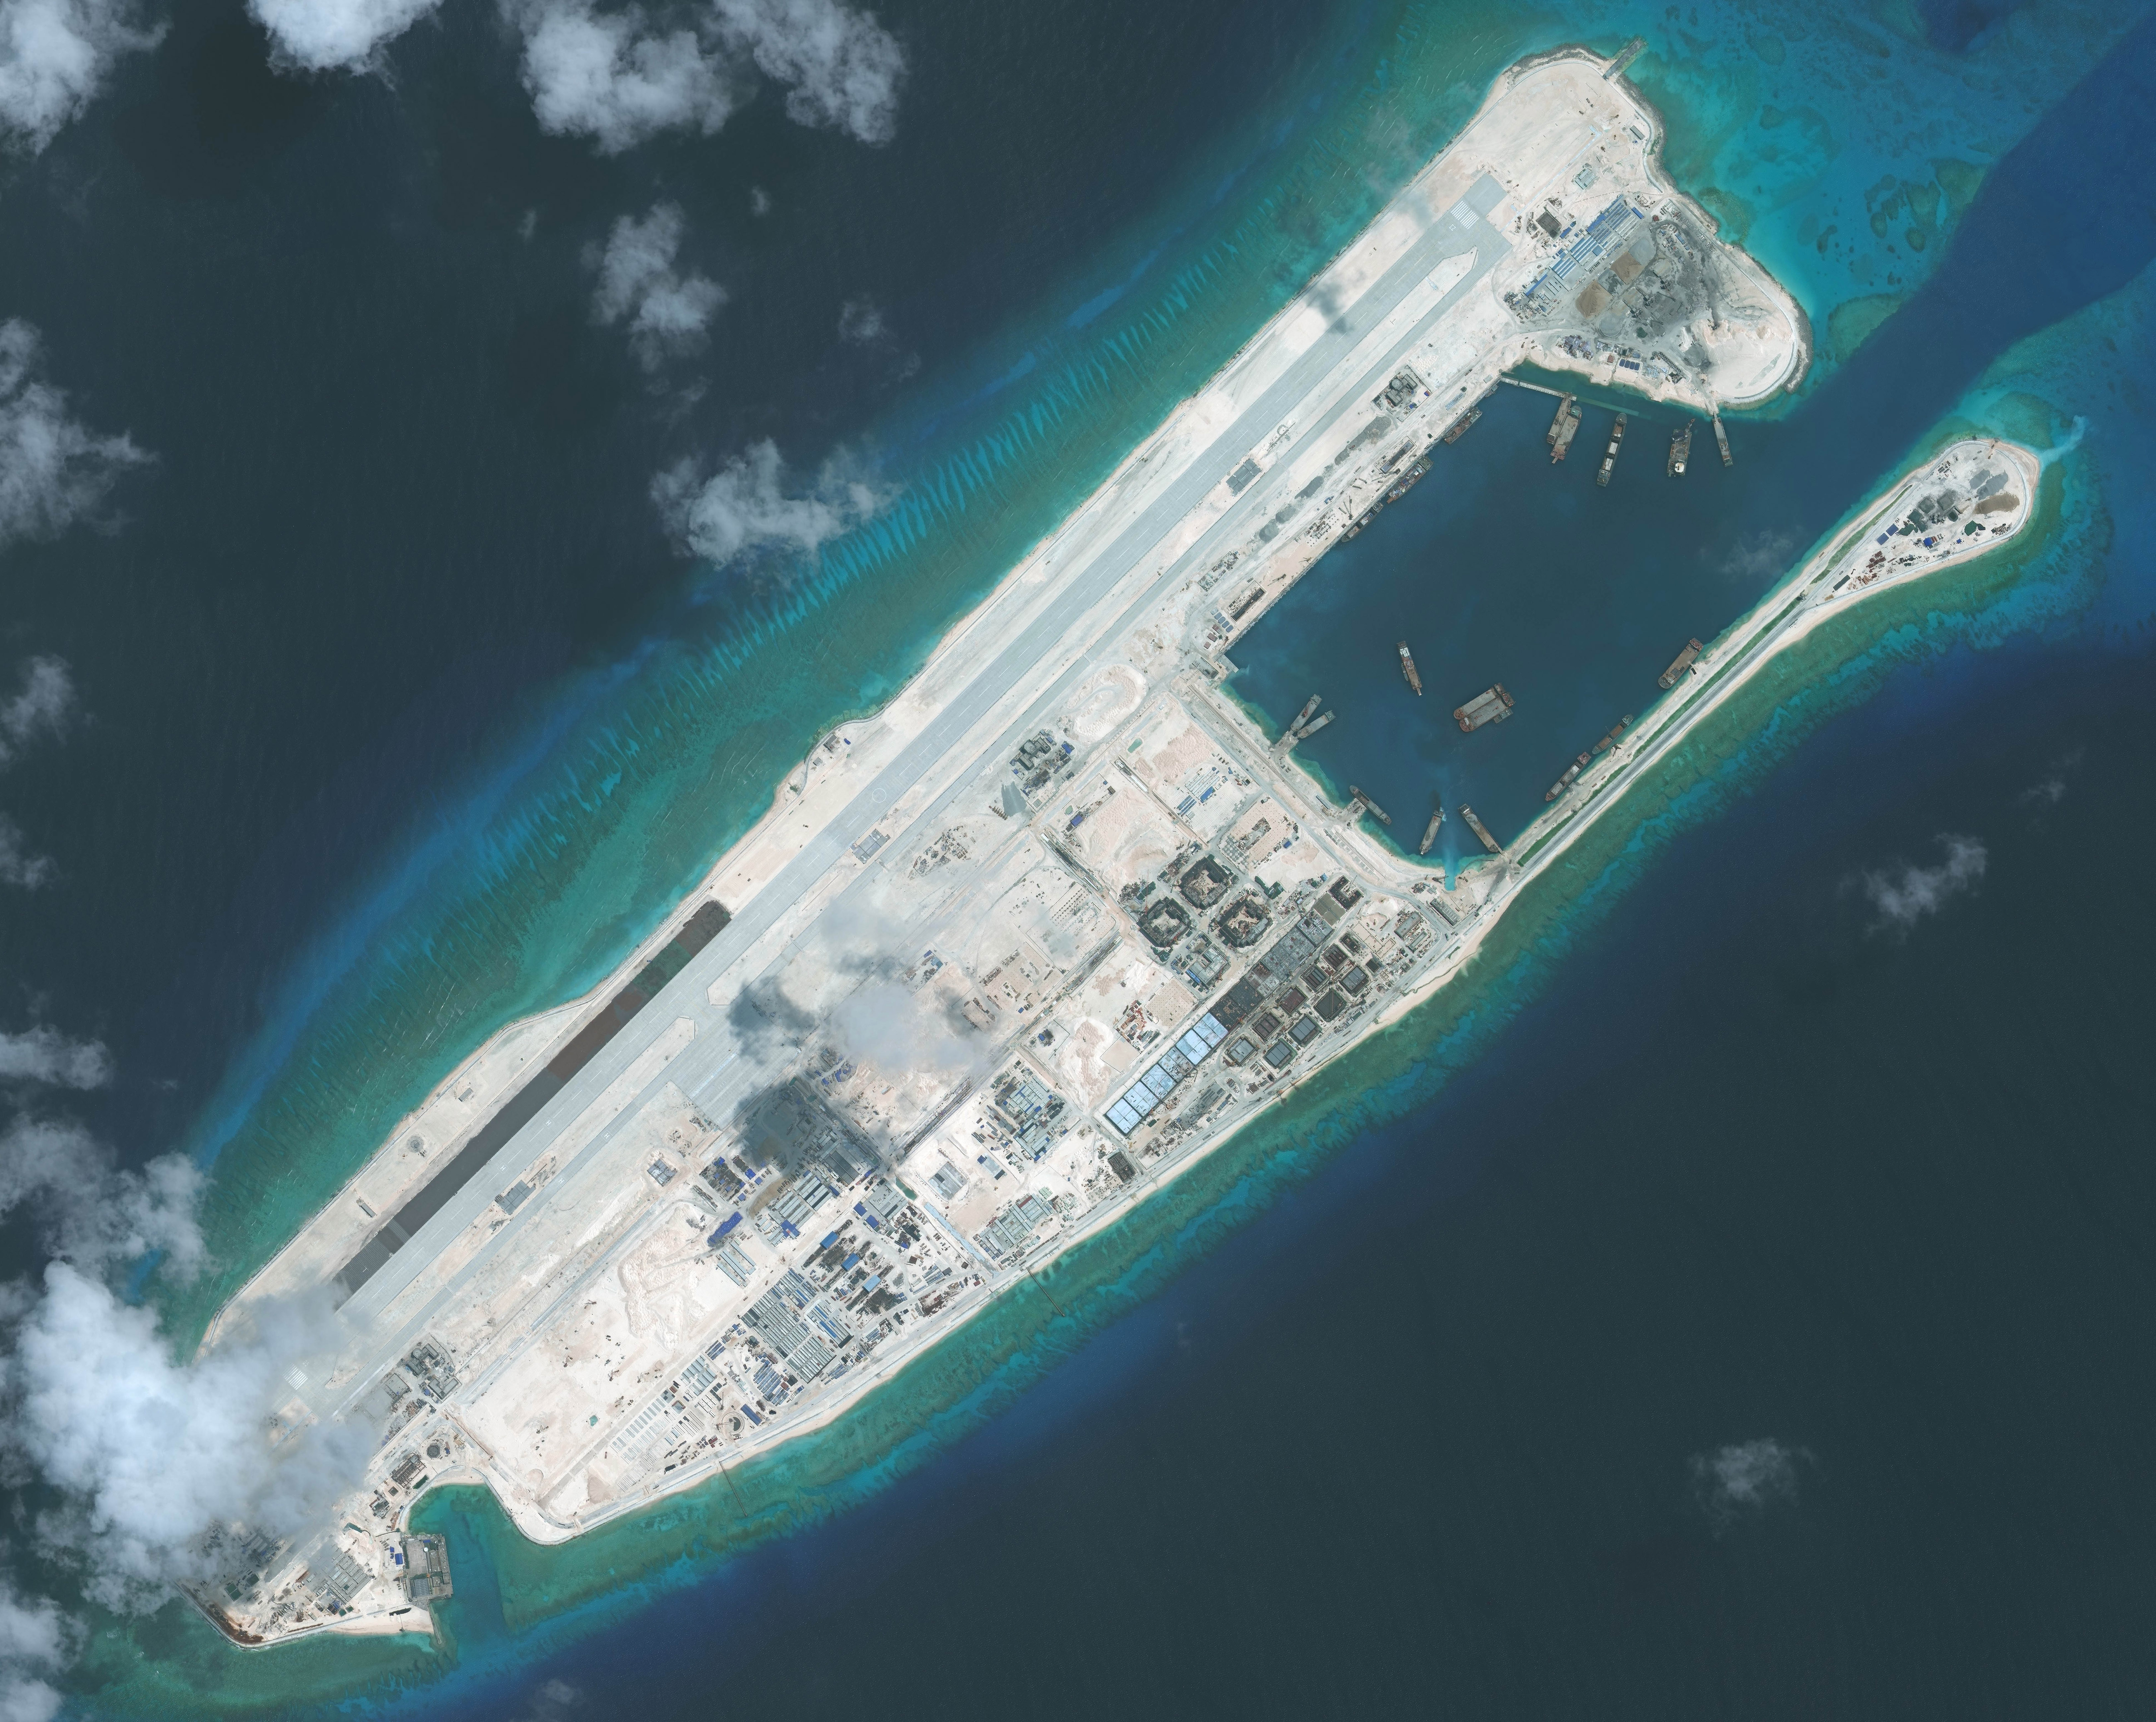 DigitalGlobe imagery of the nearly completed construction within the Fiery Cross Reef located in the South China Sea, Sept. 3, 2015